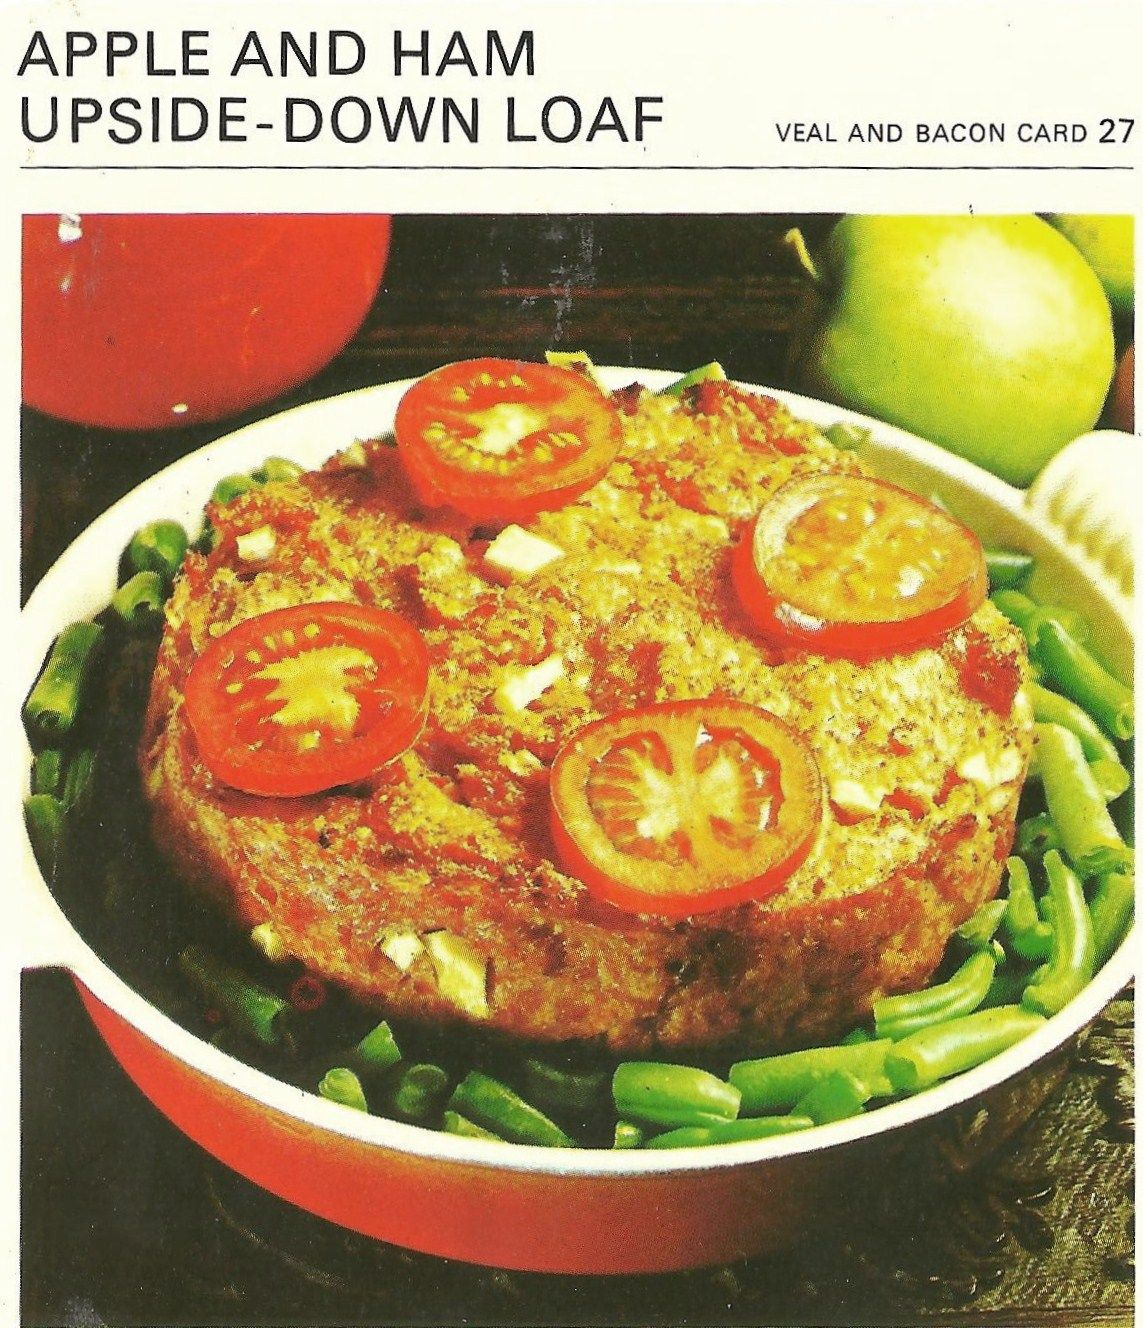 Bad and ugly of retro food marguerite patten i barely knew ye bad and ugly of retro food marguerite patten i barely knew ye recipe cards forumfinder Images